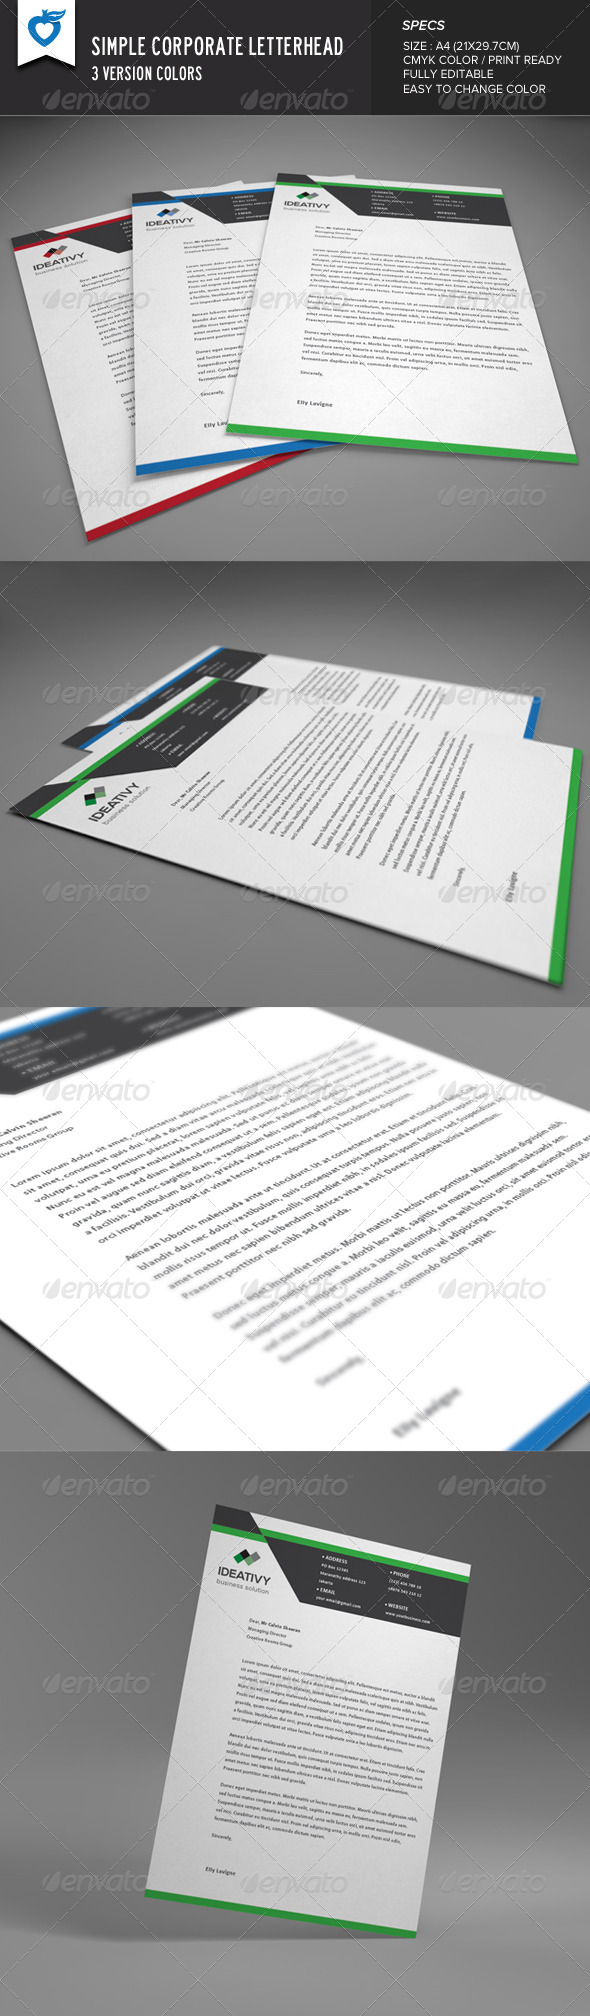 GraphicRiver Simple Corporate Letterhead 8312915